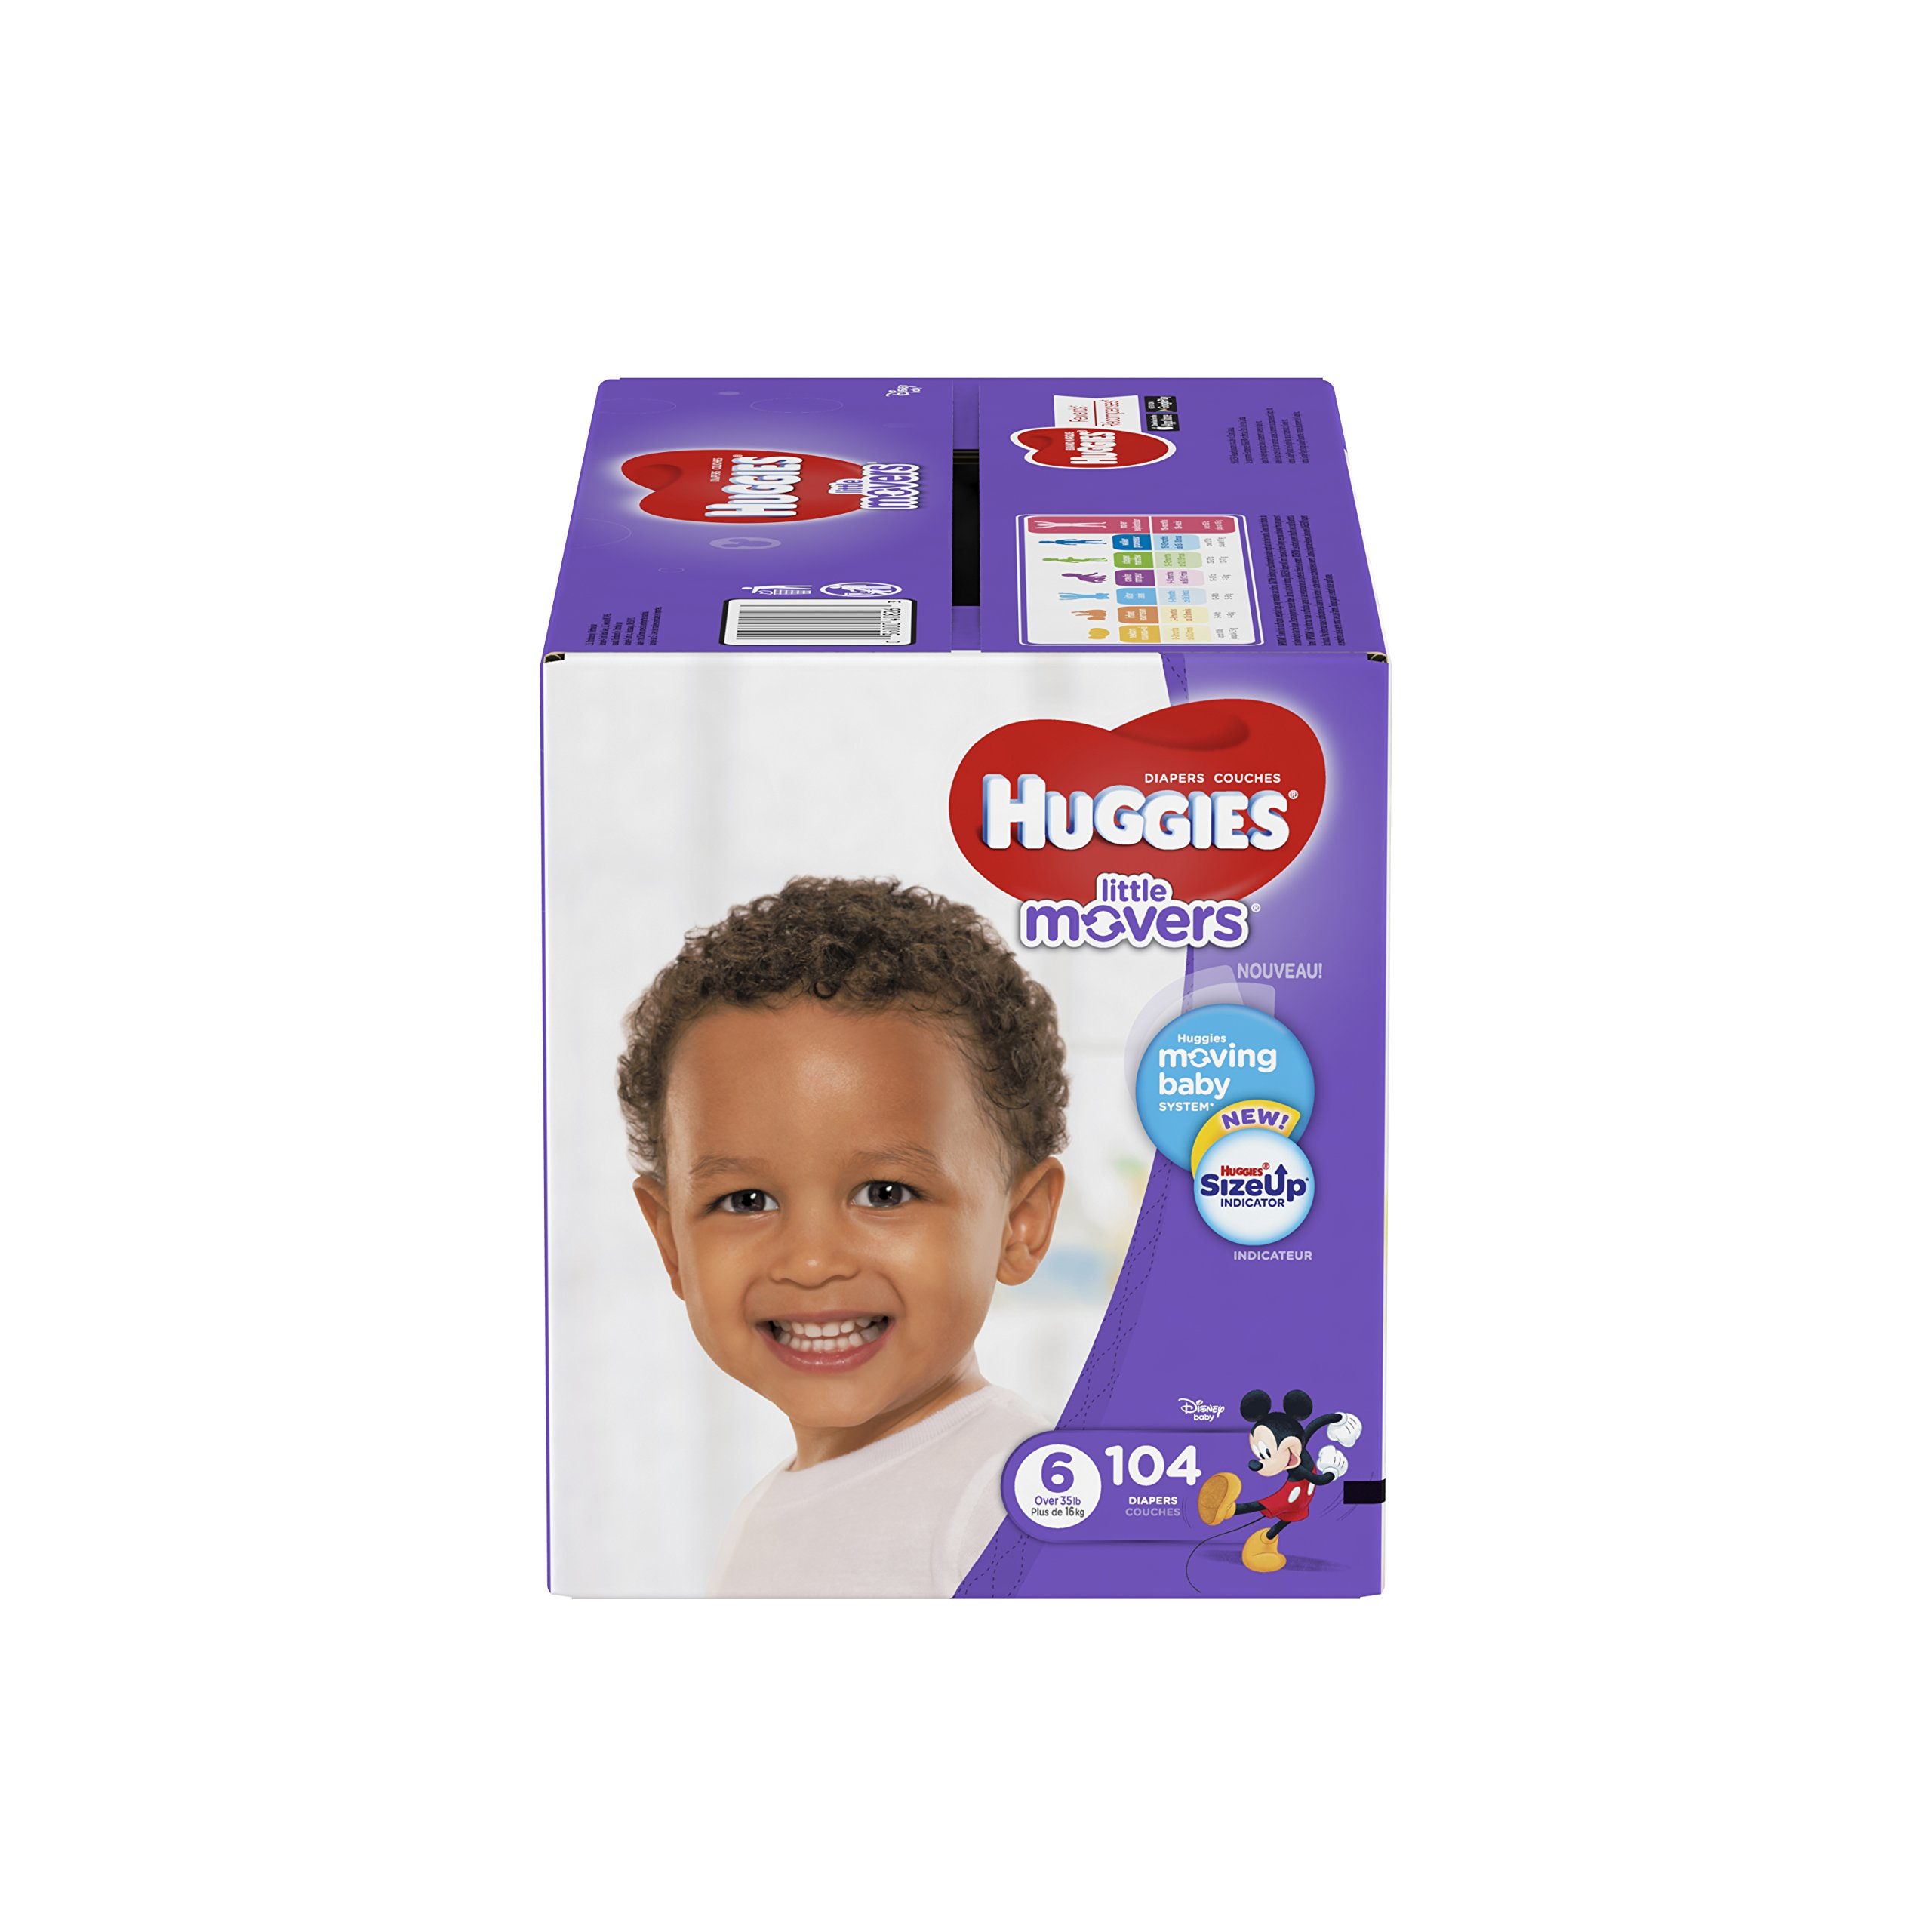 HUGGIES LITTLE MOVERS Diapers, Size 6 (35+ lb.), 104 Ct